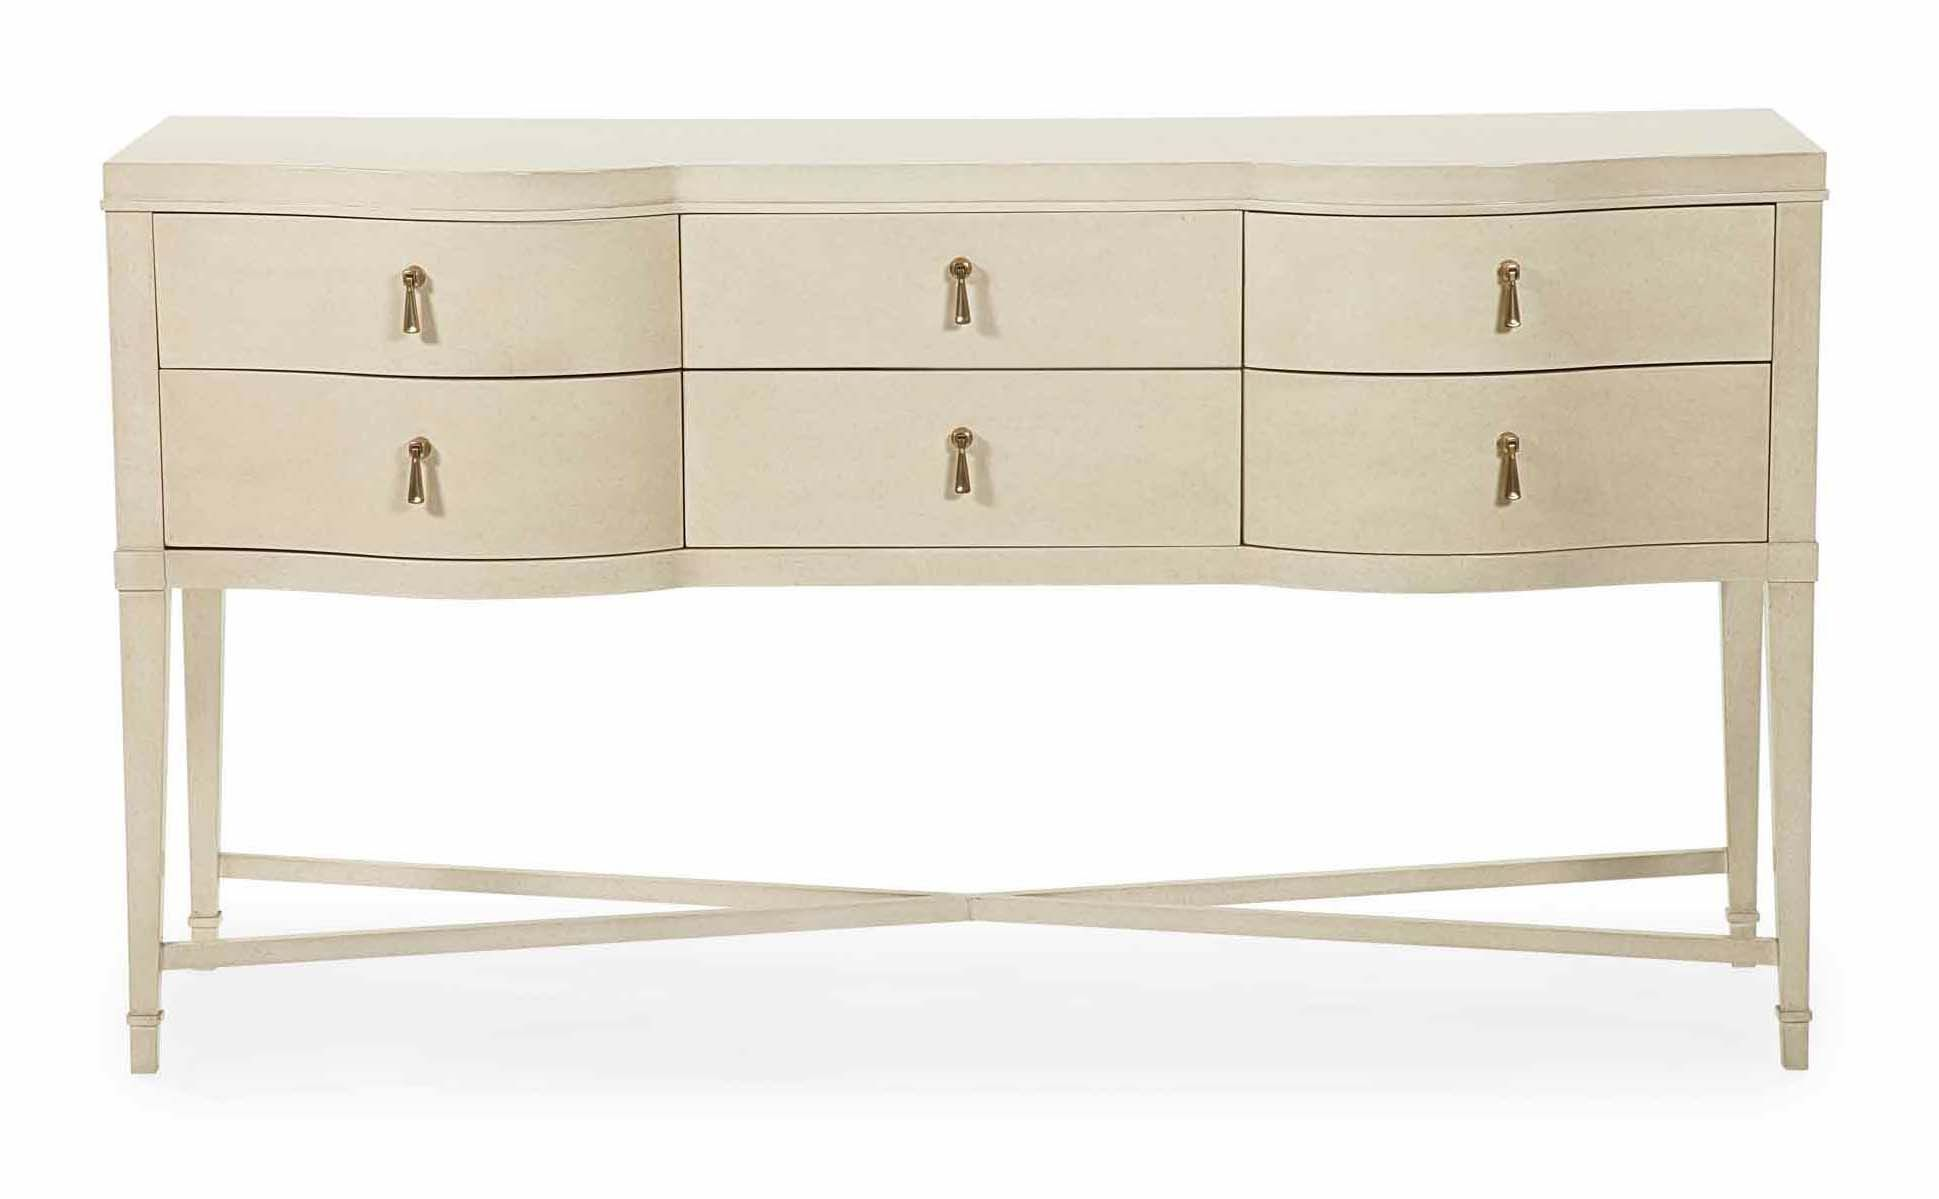 Deco Buffet Salon Bernhardt Salon Sideboard Chest Of Drawers Commodes